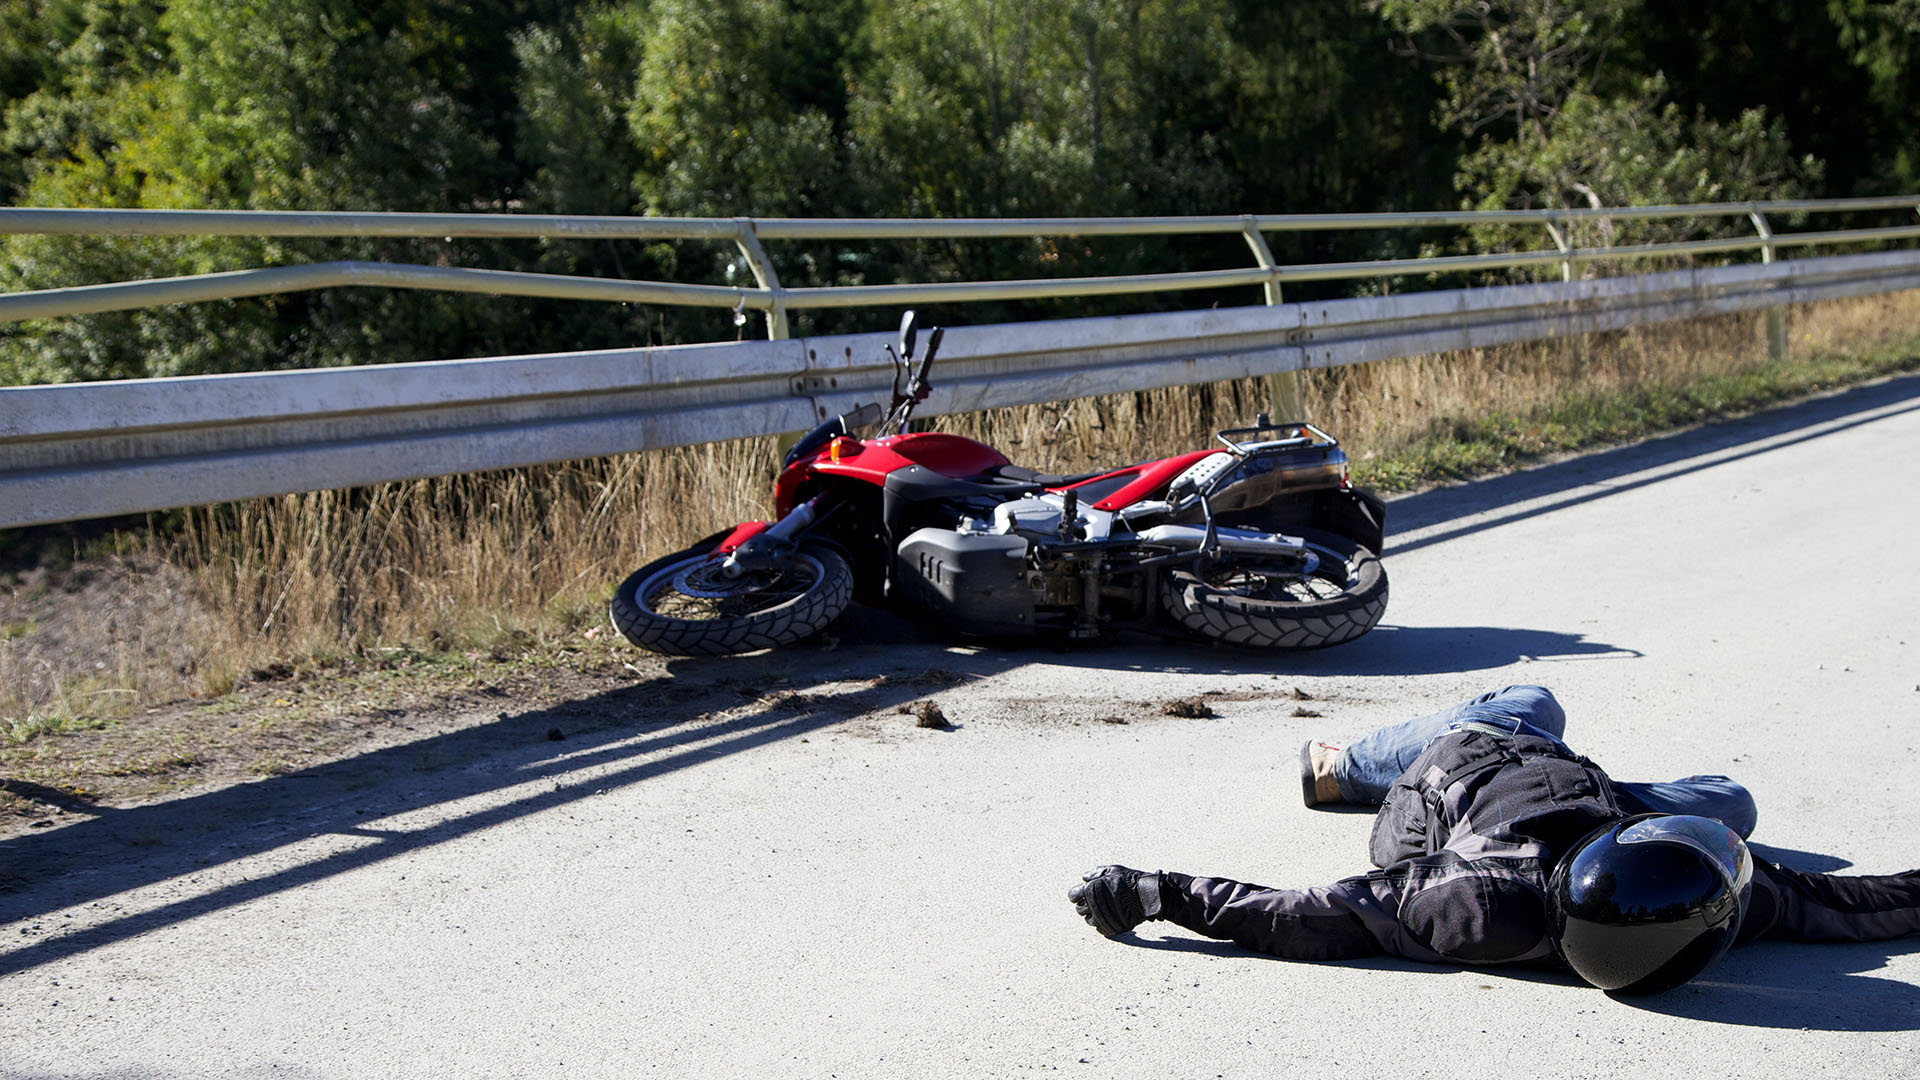 rider and motorcycle lying on the road after a crash